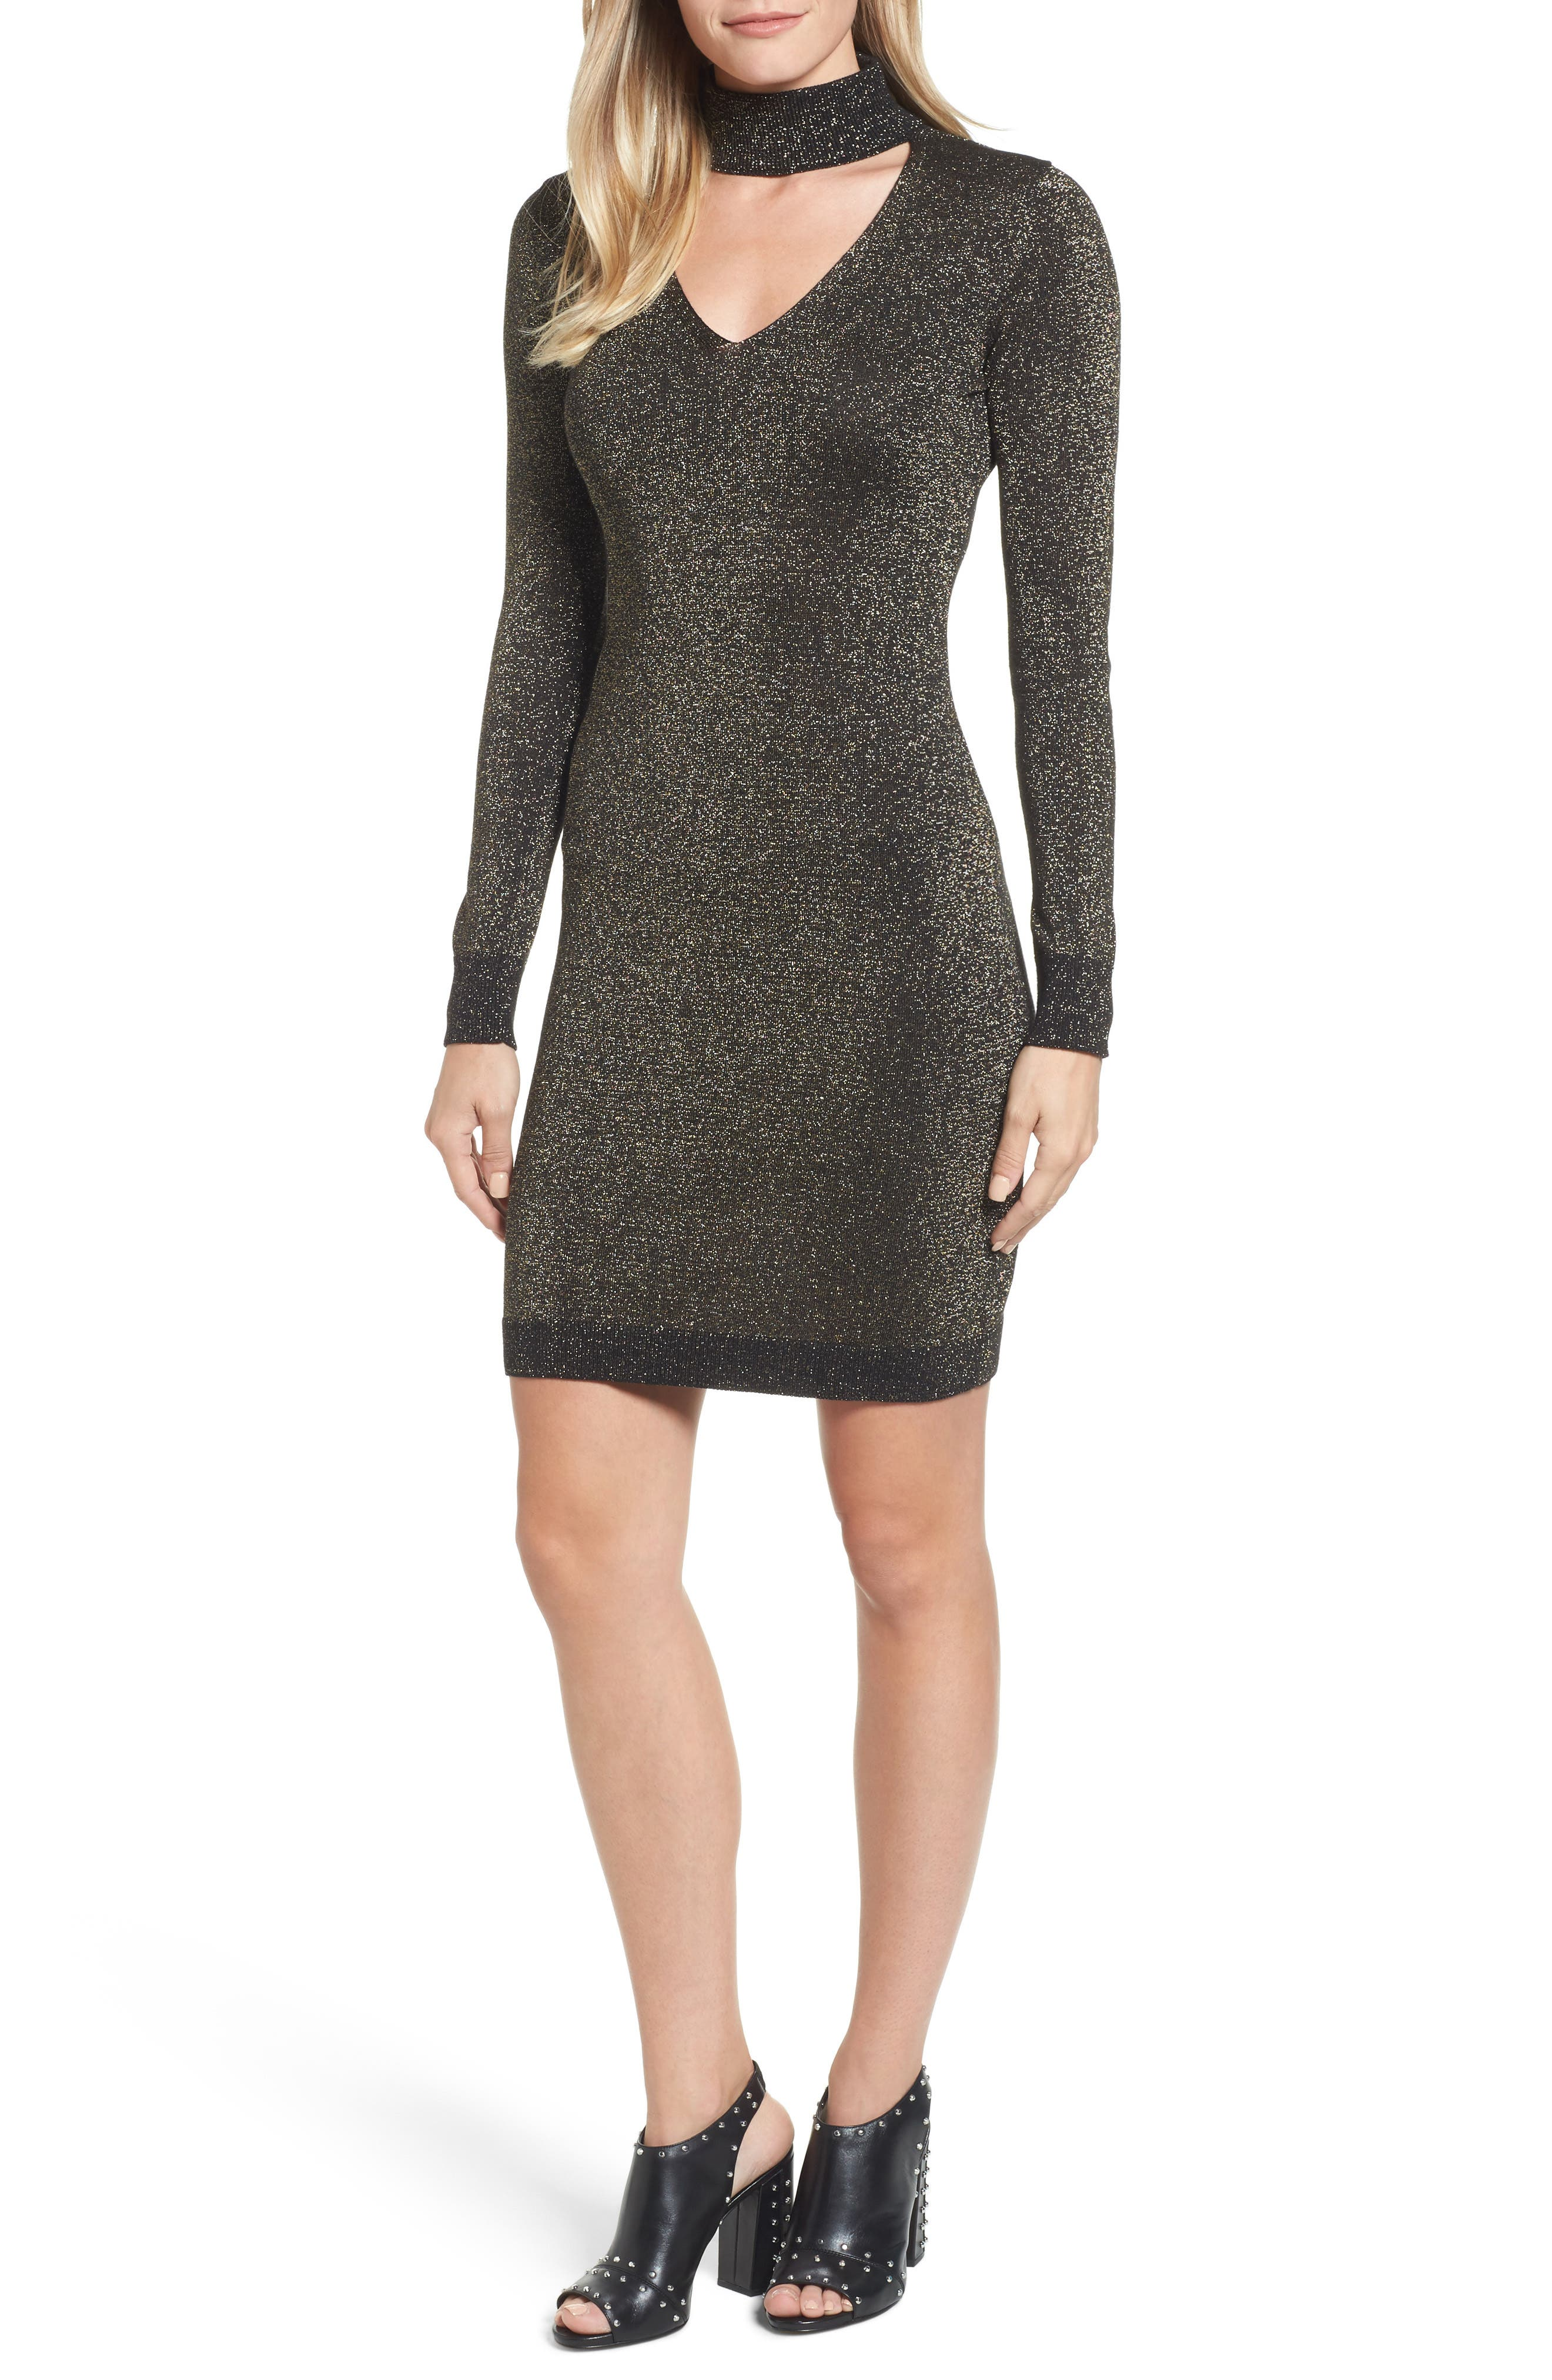 Choker Sweater Dress,                         Main,                         color, Black/ Gold